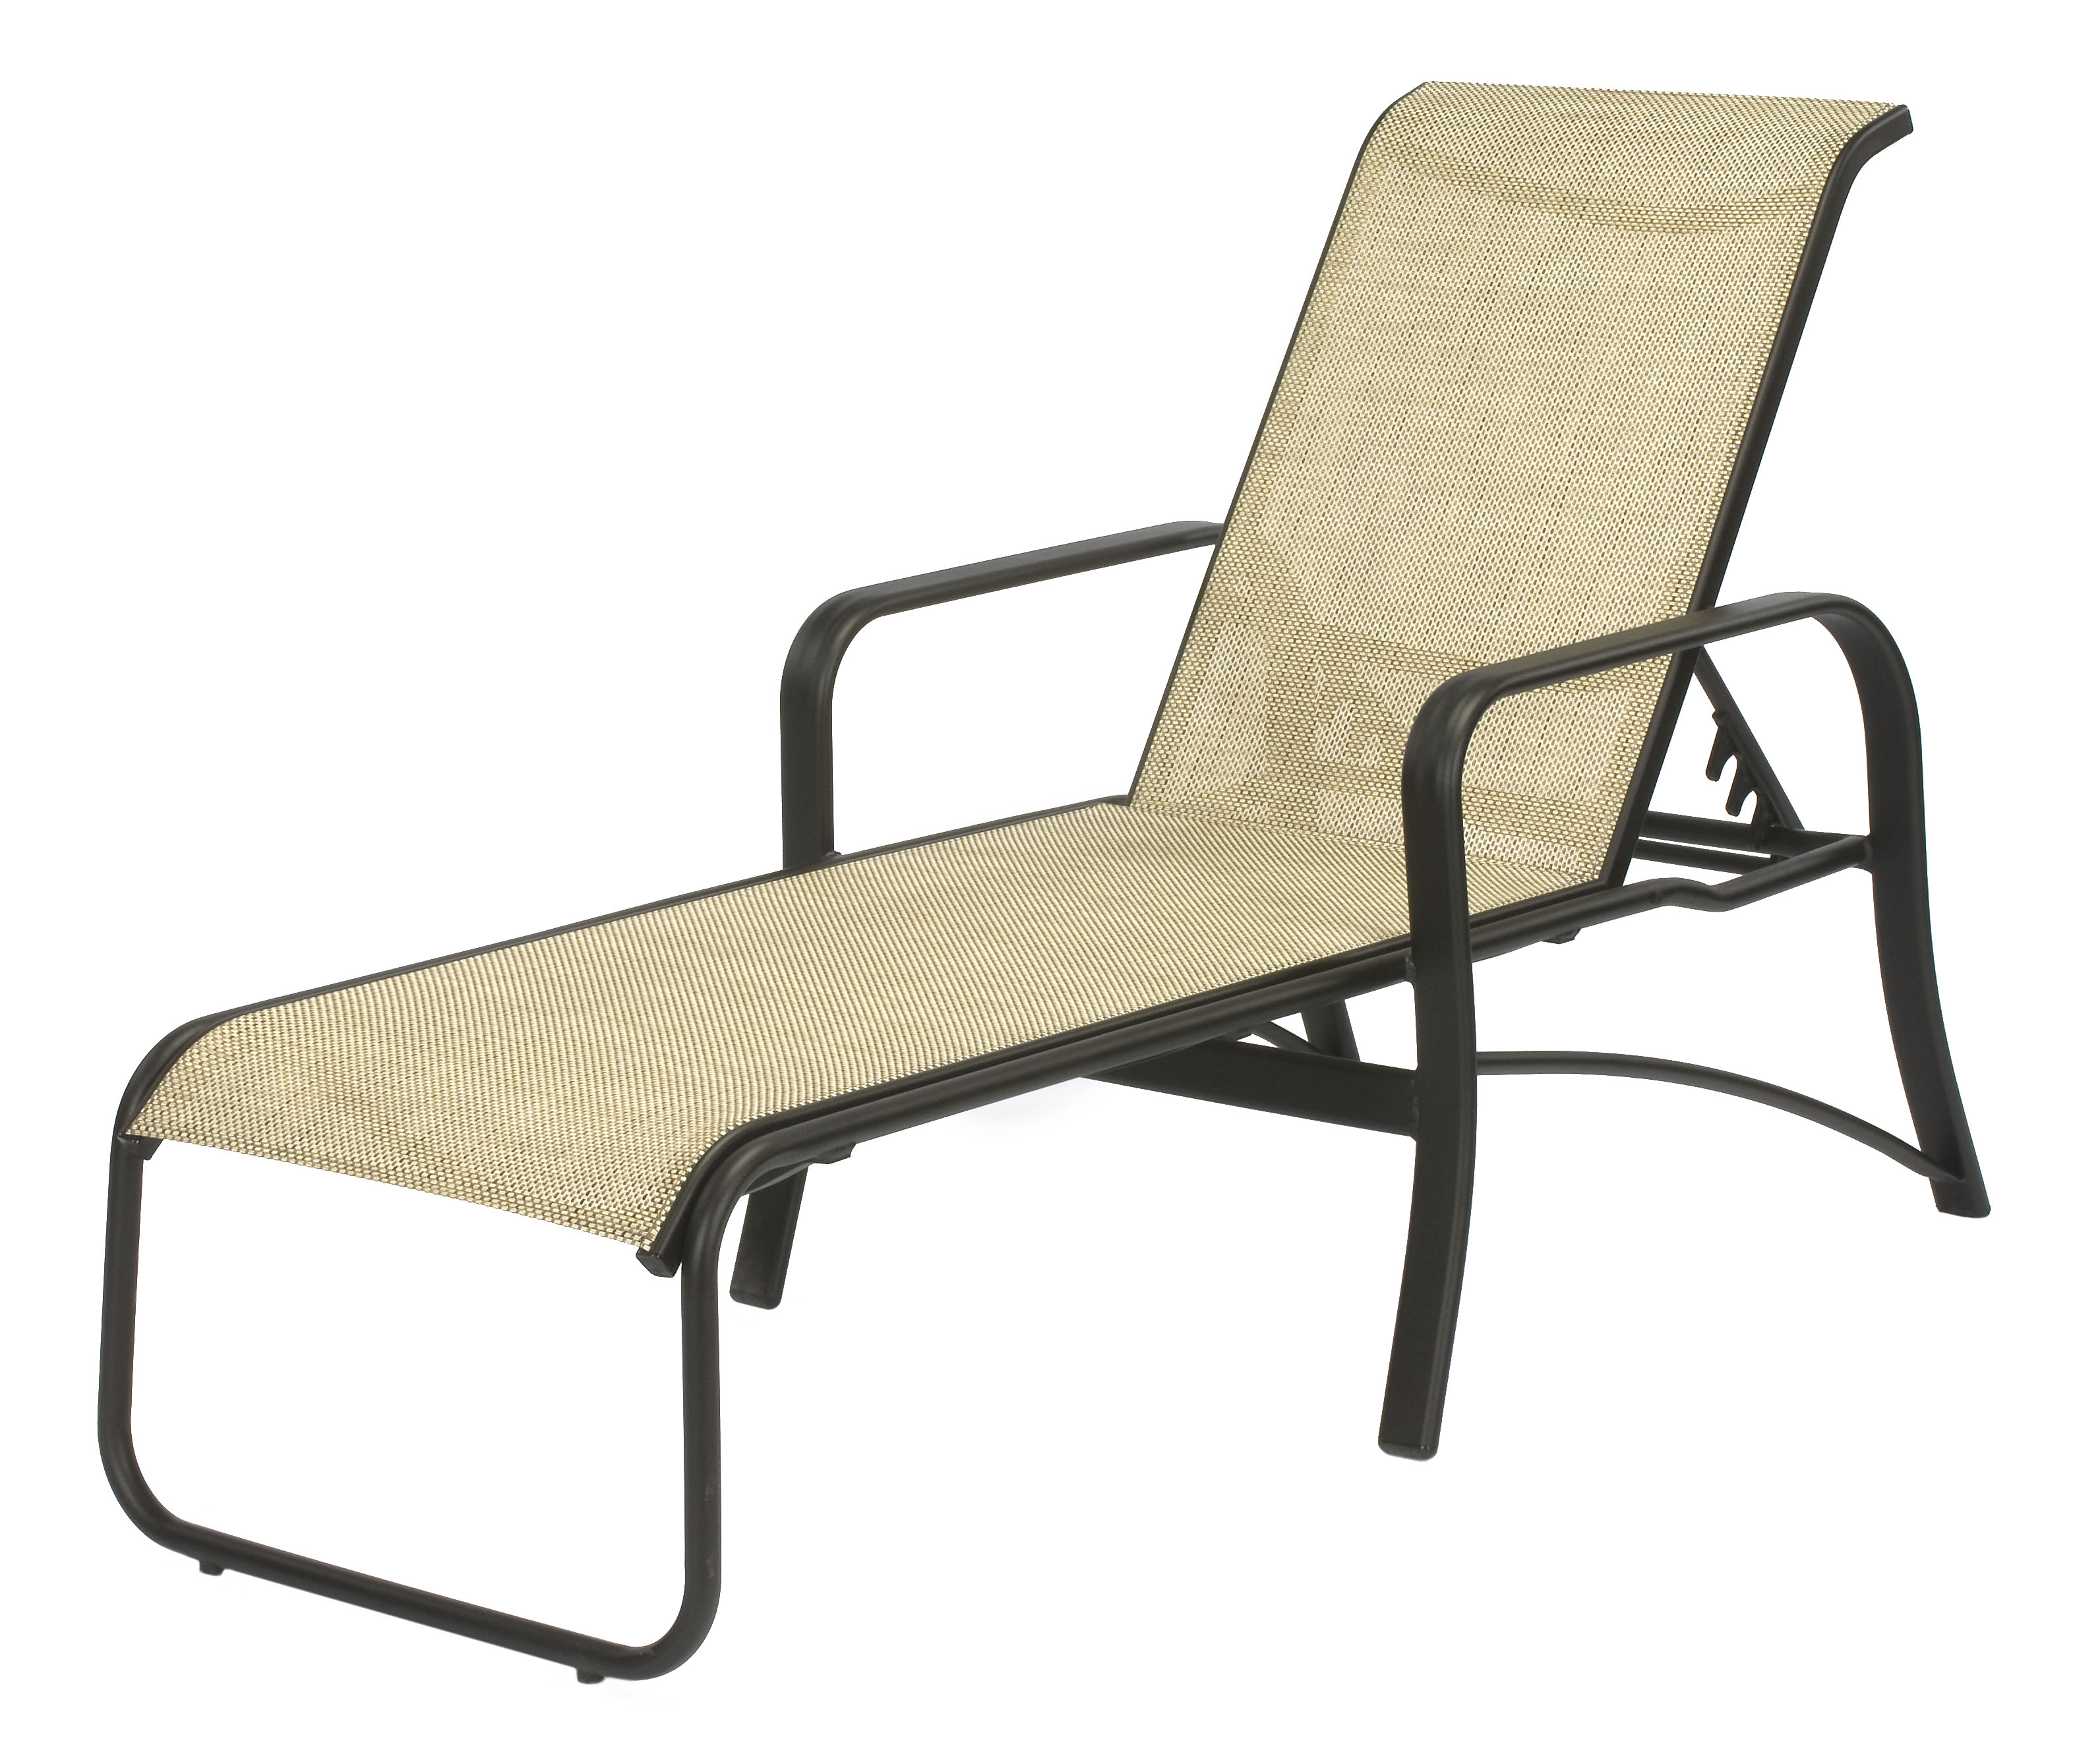 16 in Seat Montego Bay Aluminum Sling Patio Chaise Lounge Chair